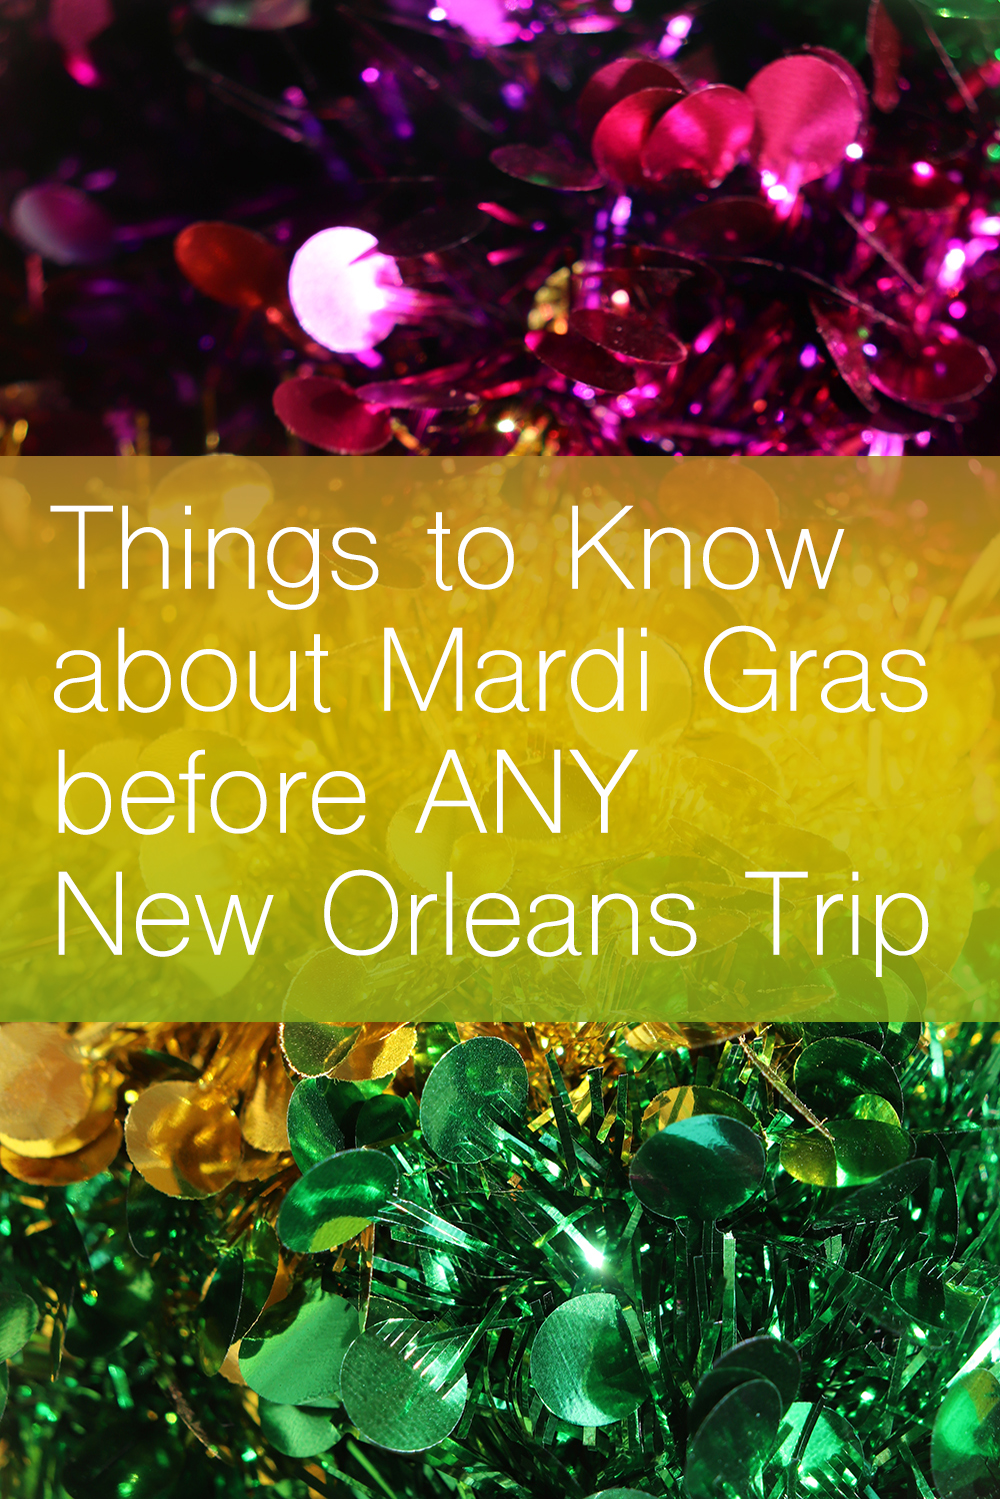 Things to Know about Mardi Gras before ANY New Orleans Trip